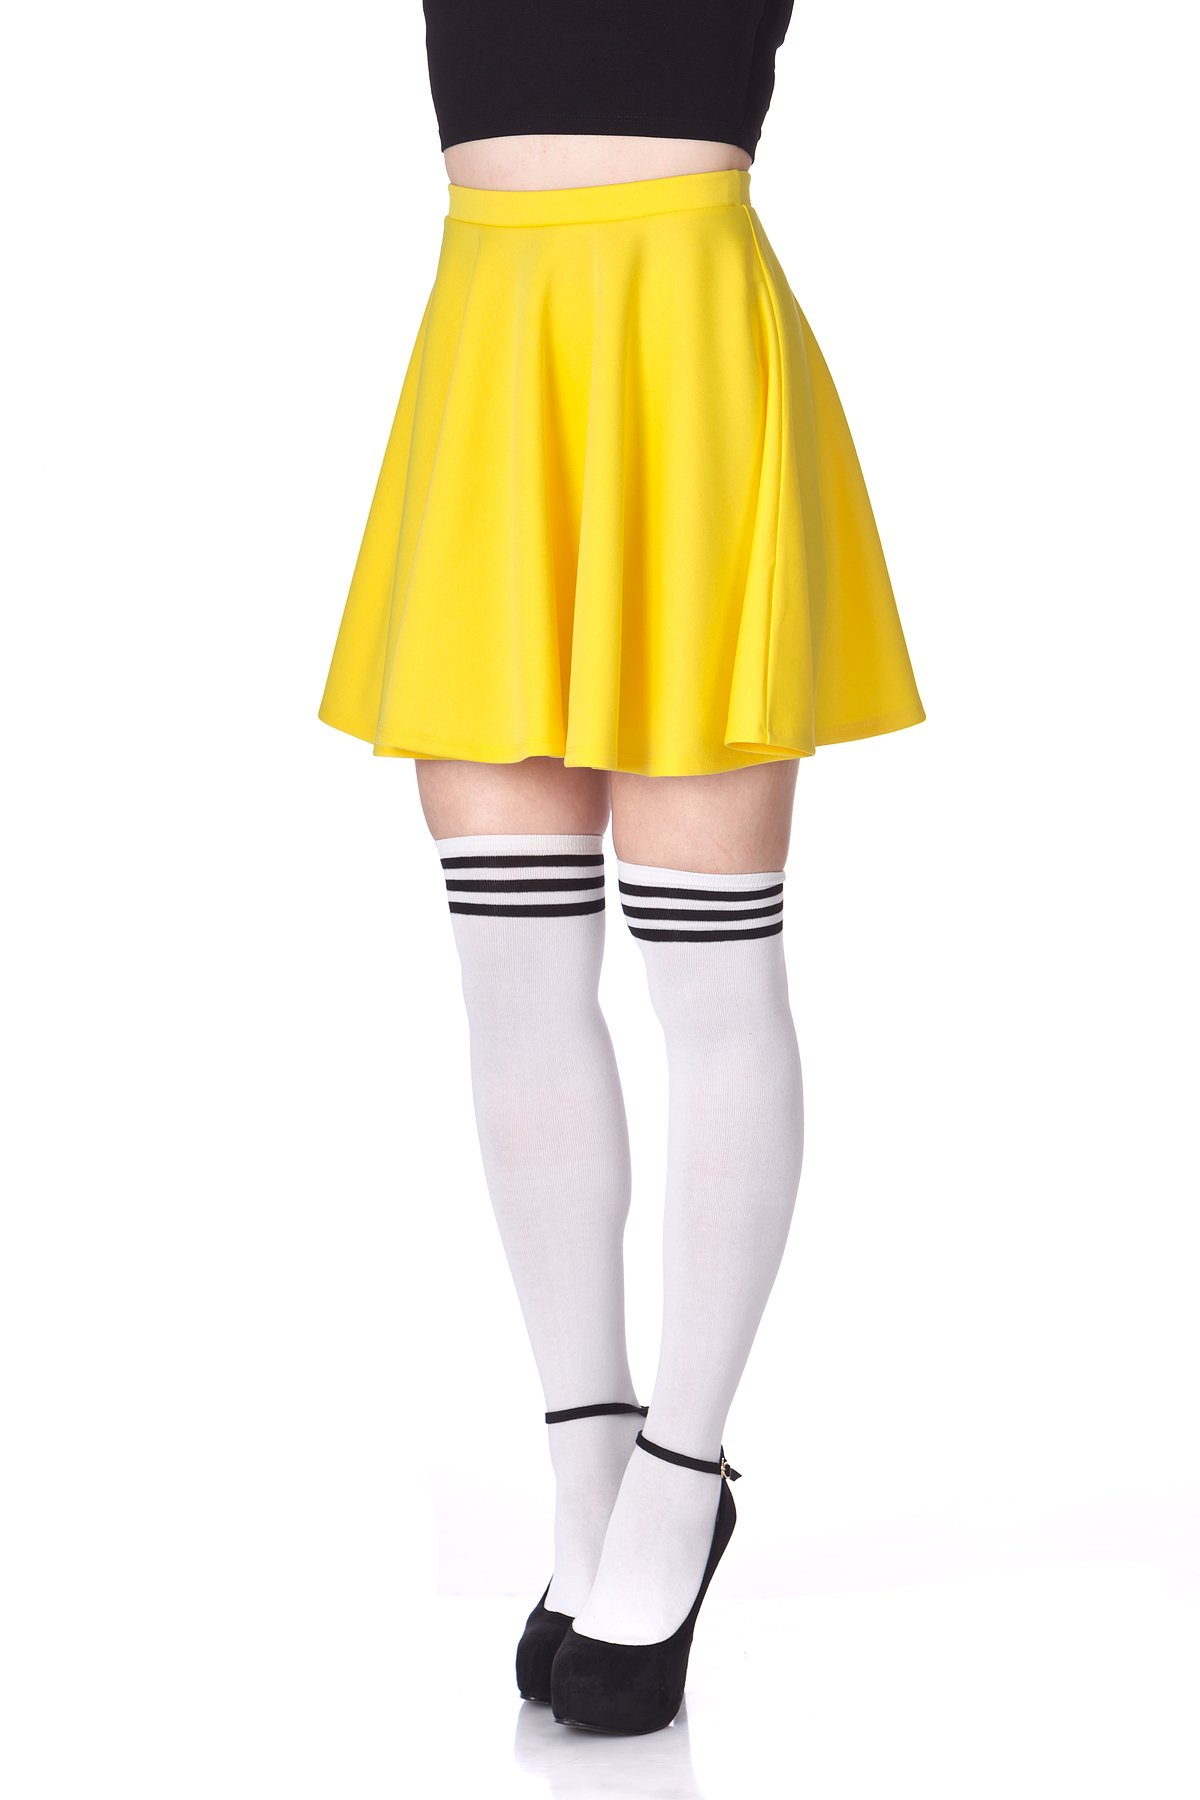 Flouncy High Waist A line Full Flared Circle Swing Dance Party Casual Skater Short Mini Skirt Yellow 06 1